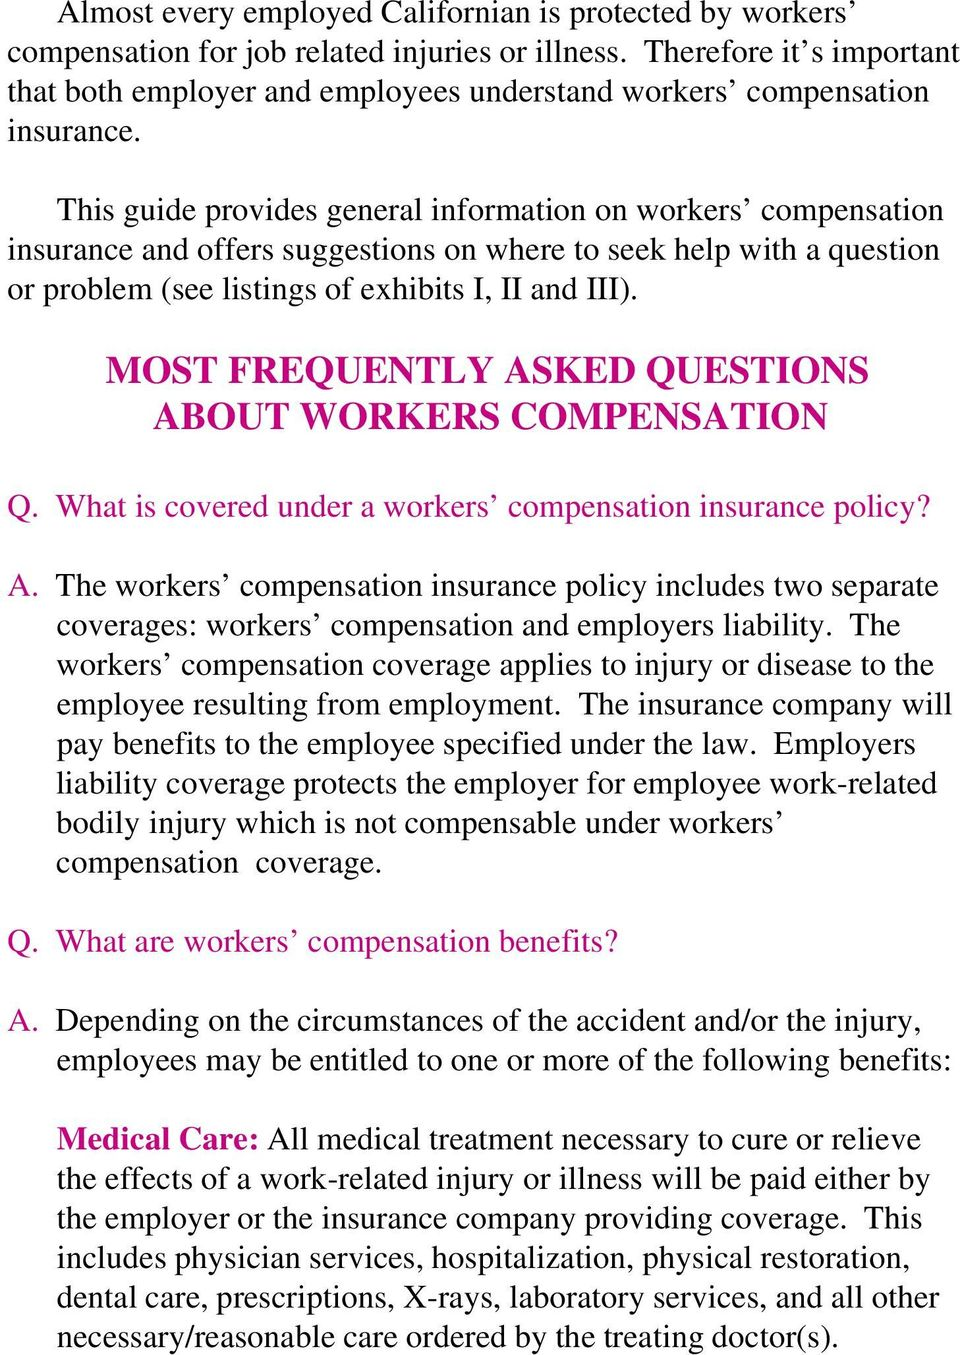 This guide provides general information on workers compensation insurance and offers suggestions on where to seek help with a question or problem (see listings of exhibits I, II and III).